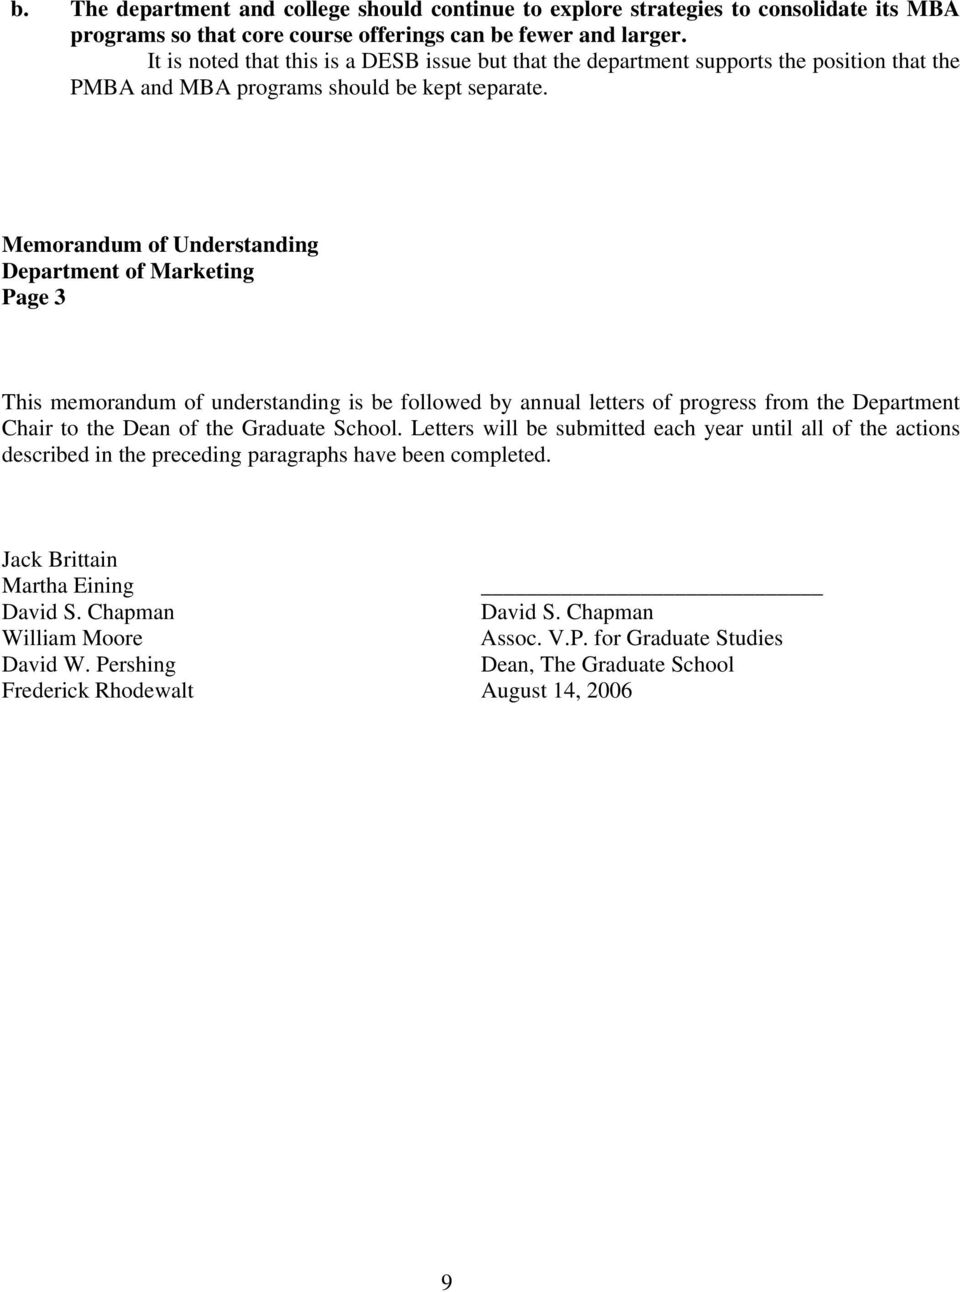 Memorandum of Understanding Department of Marketing Page 3 This memorandum of understanding is be followed by annual letters of progress from the Department Chair to the Dean of the Graduate School.